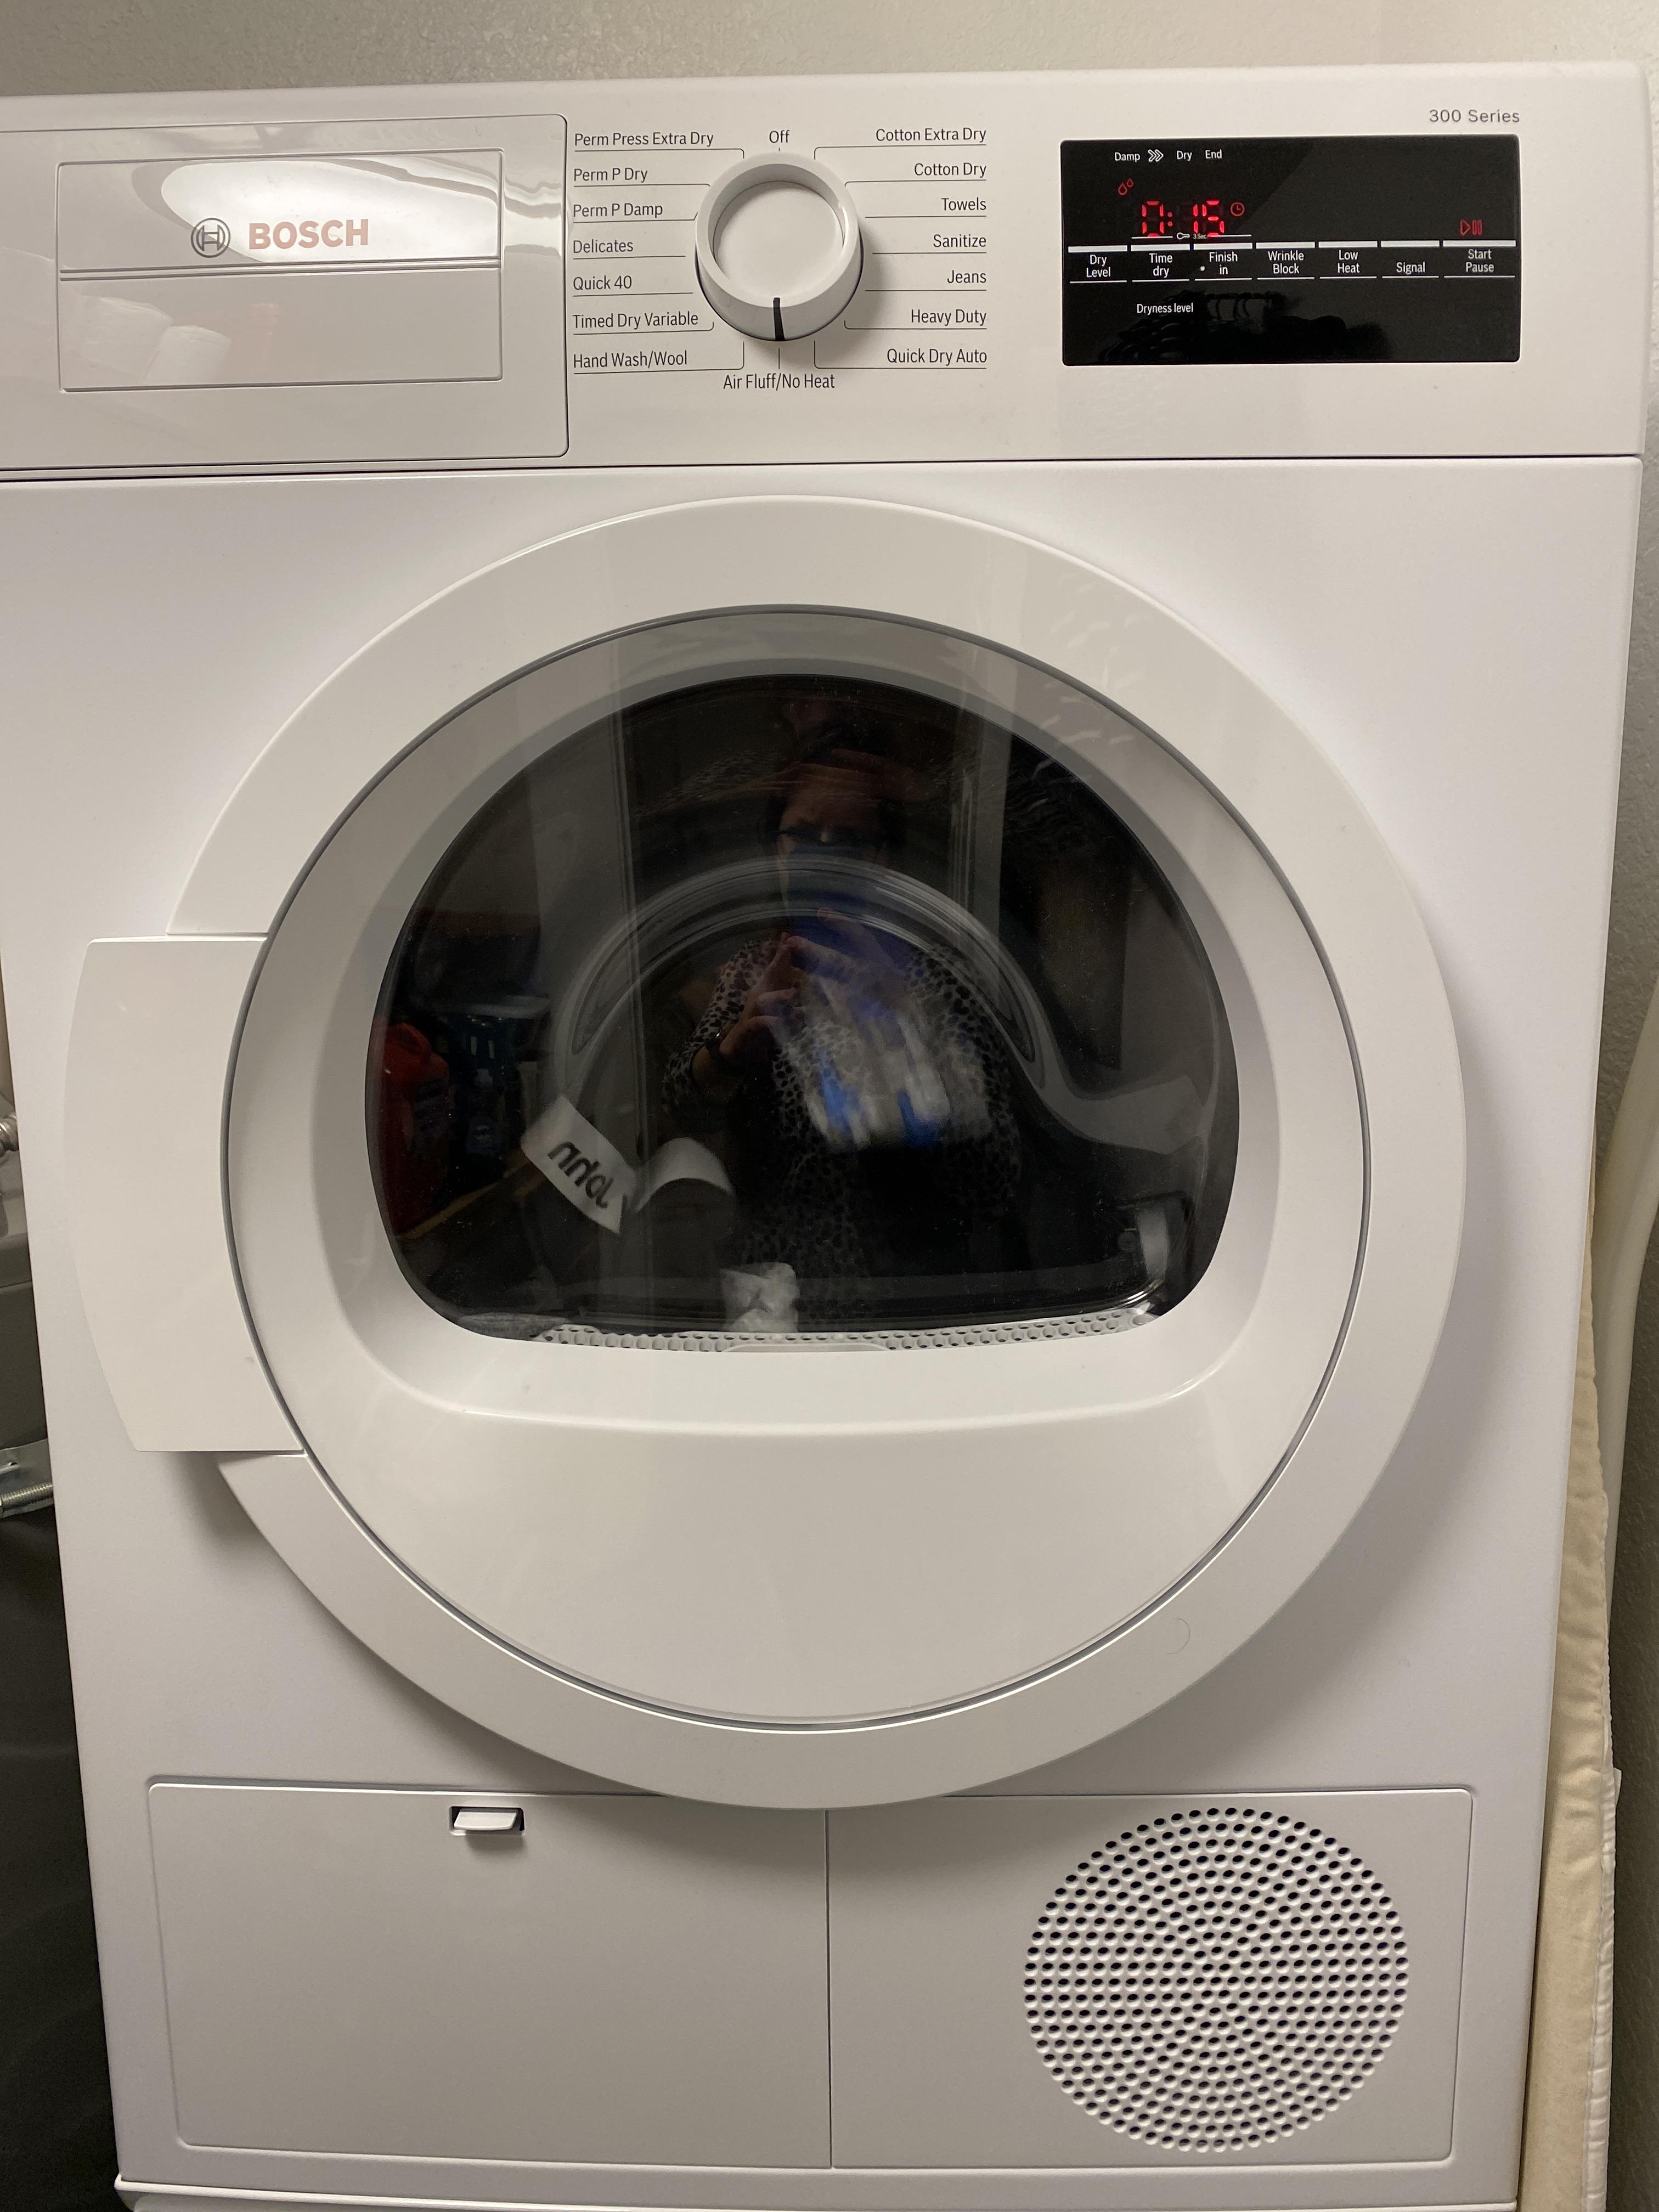 Brand New Bosch Dryer Not Drying Appliancerepair